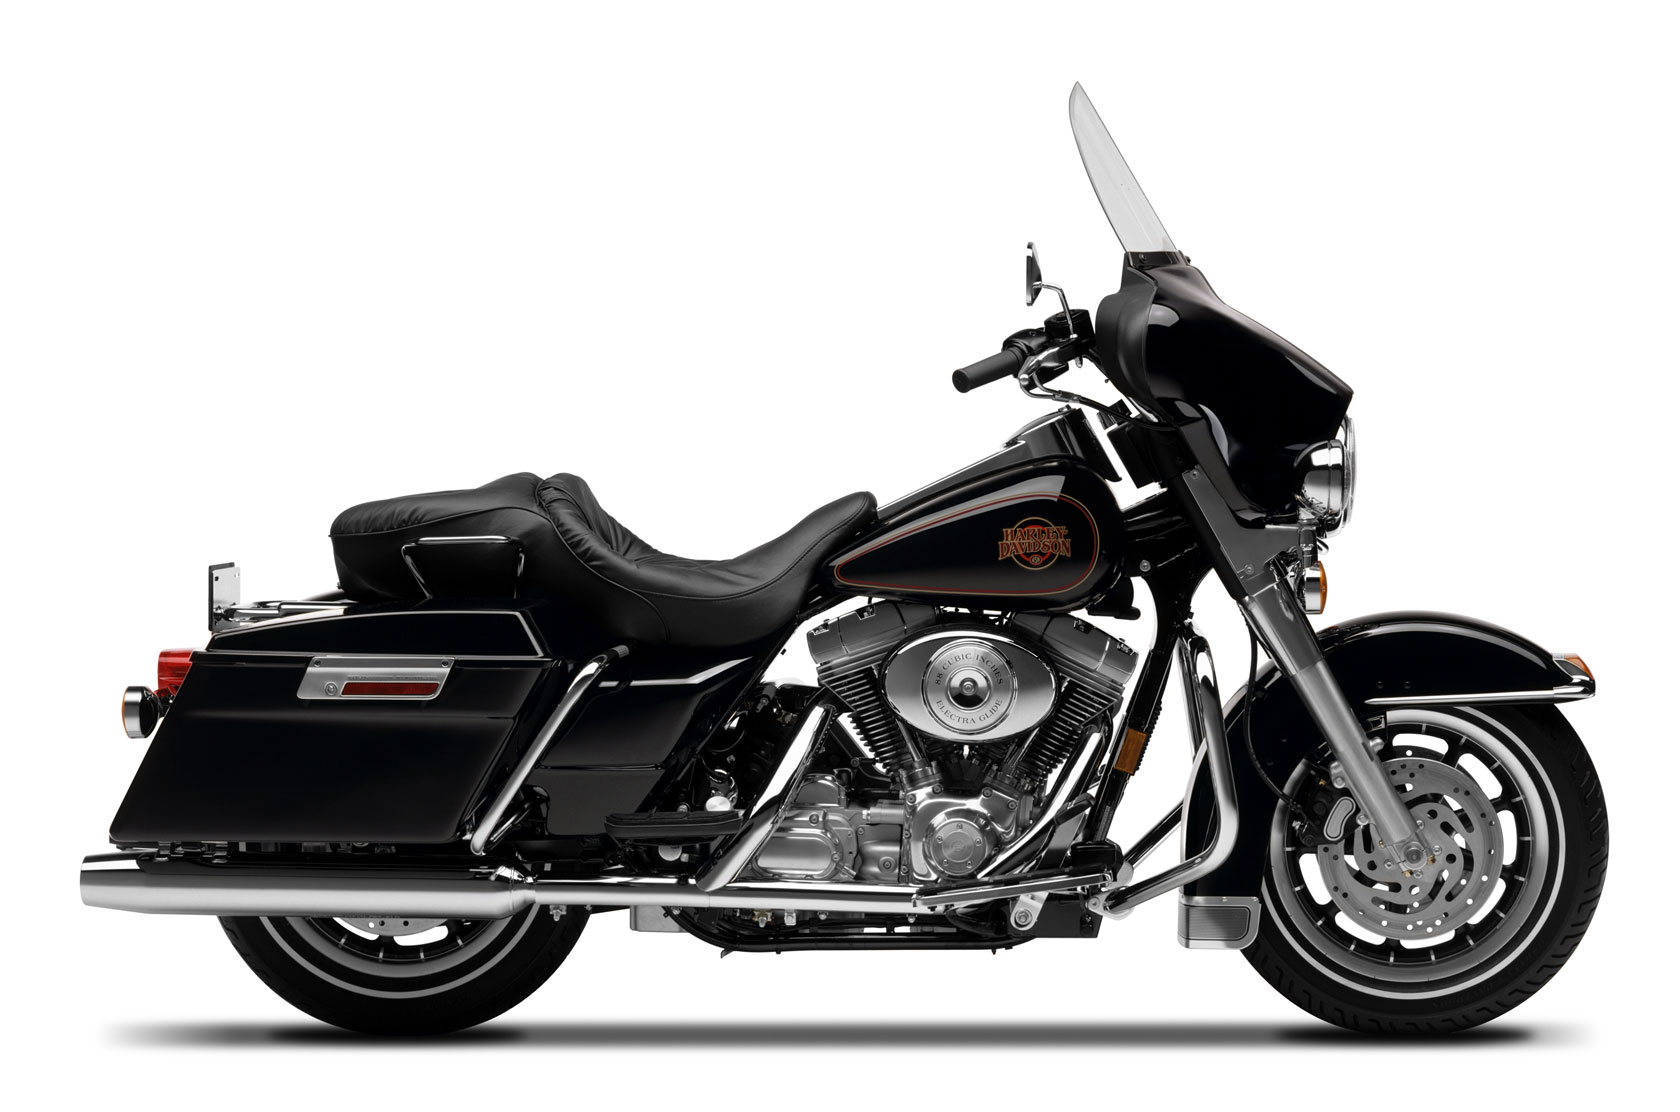 2001 Harley Davidson Electra Glide Ultra Classic   Moto ...